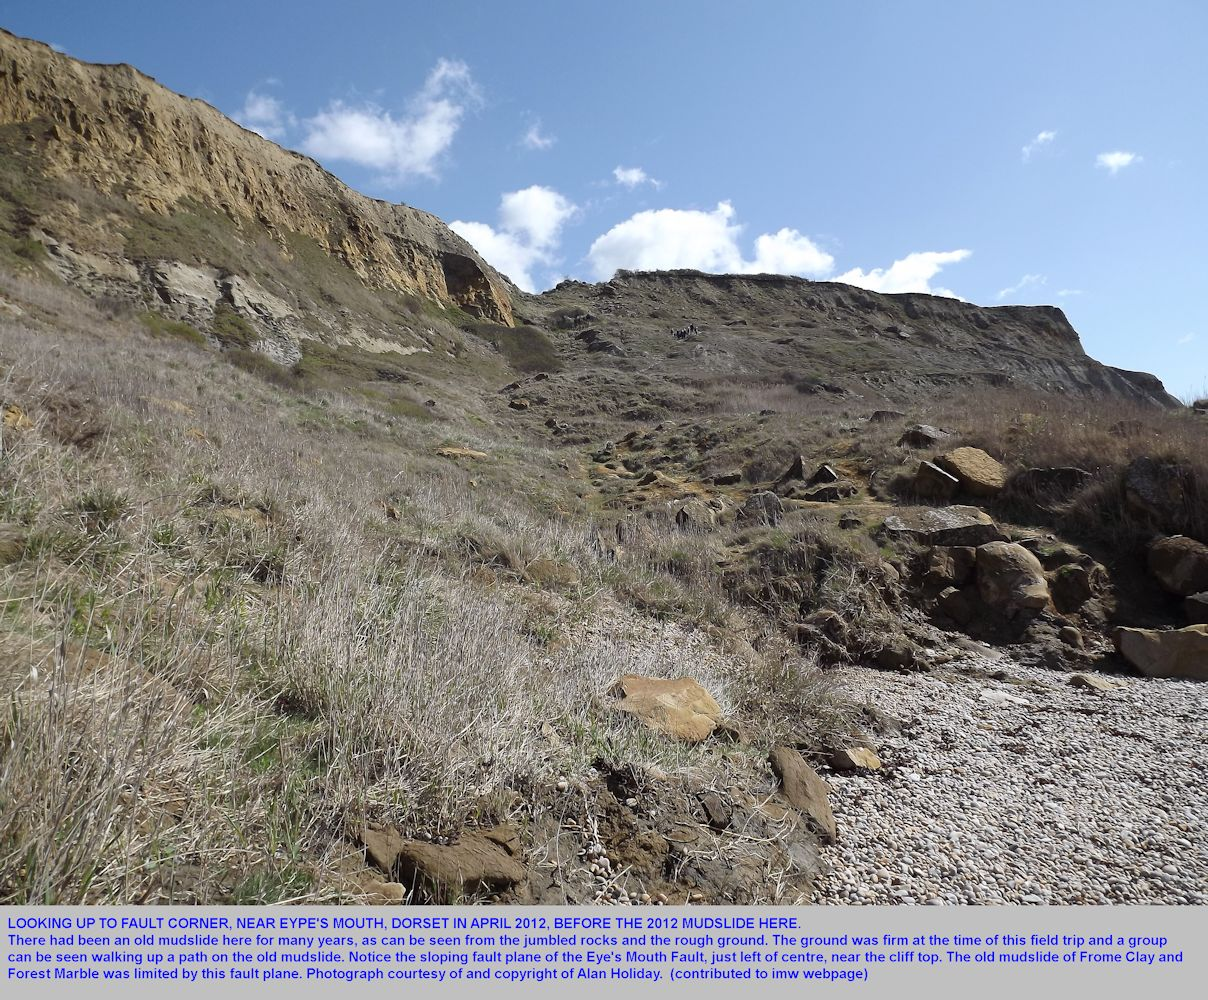 Fault Corner, Eype's Mouth, near Bridport, Dorset, in April 2012, prior to the renewed mudslide here later in the year, photograph by Alan Holiday